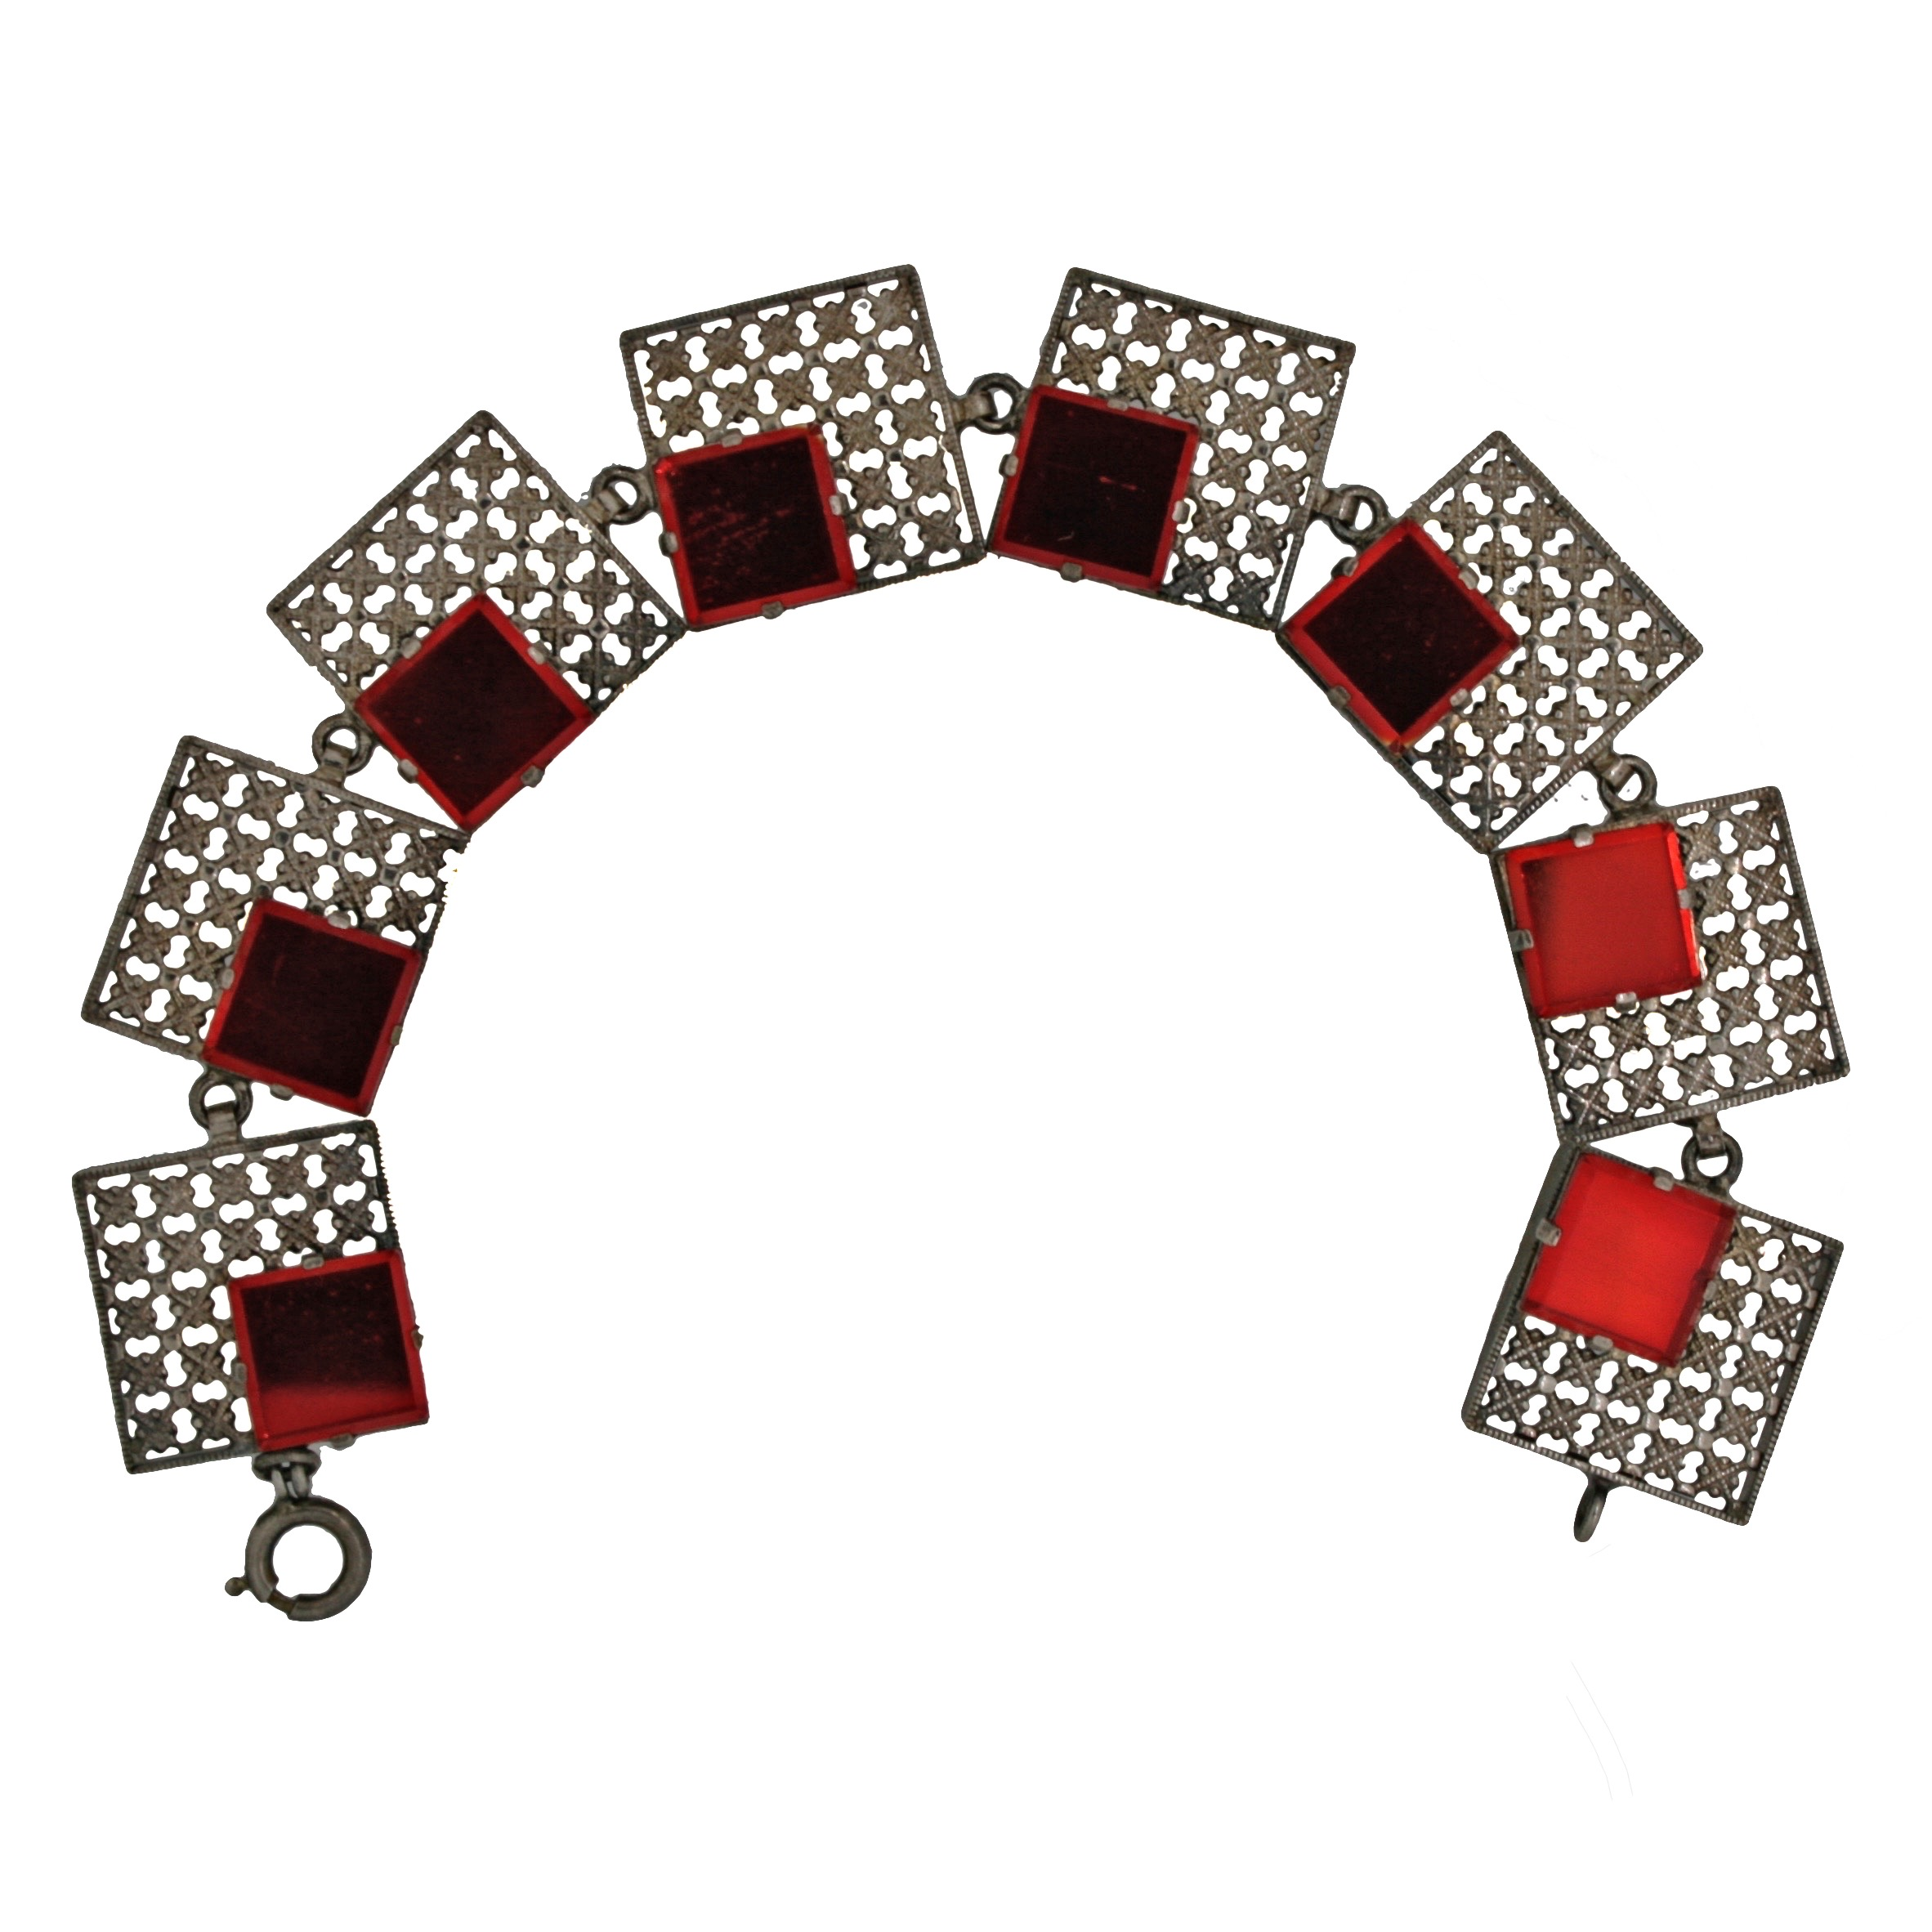 Gemma Redmond Vintage: Silver tone open-work bracelet with red mirrored panels, French origins, 1920s.